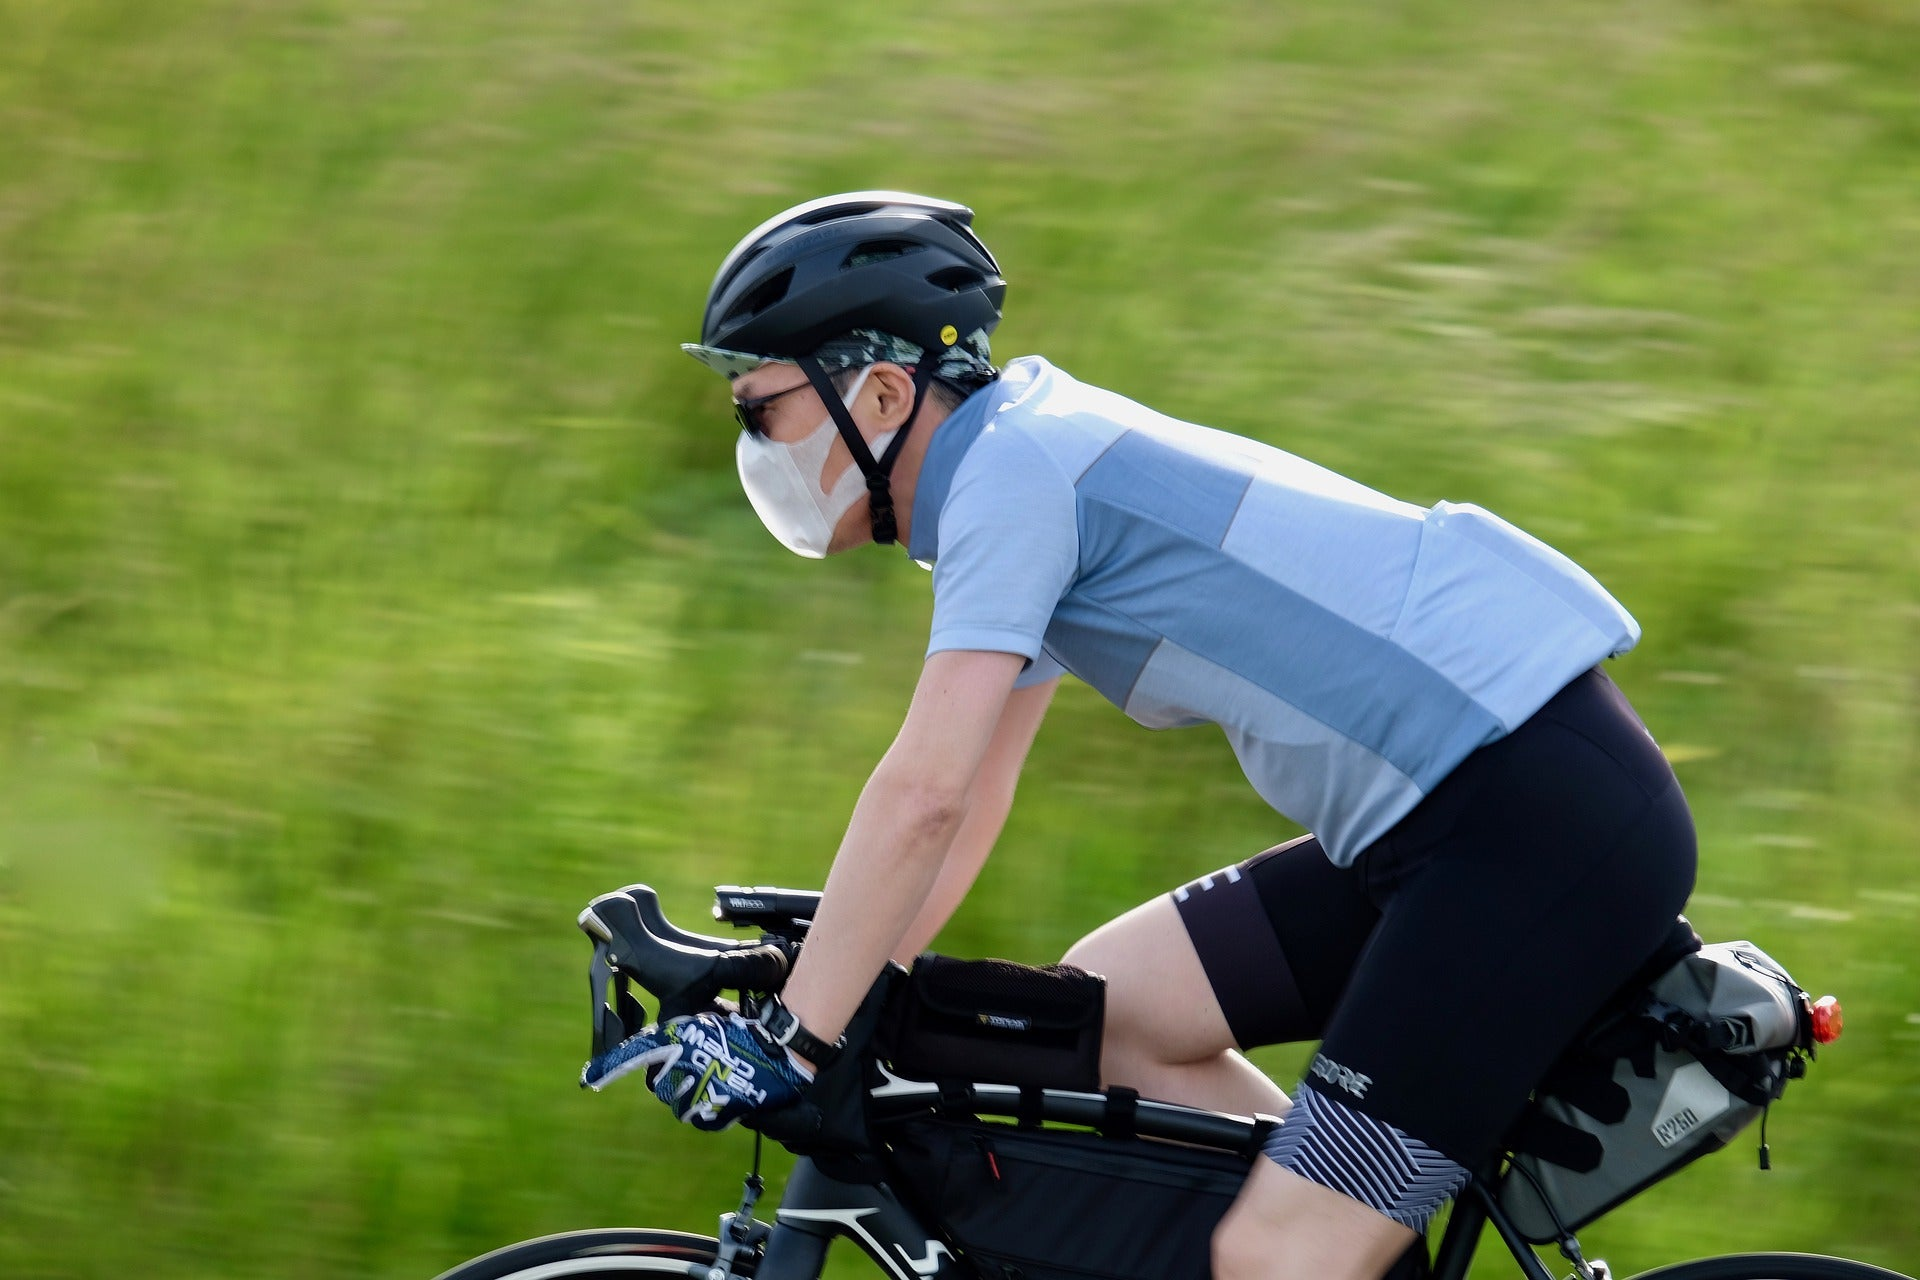 Your Complete Guide to Bike Riding With a Face Mask